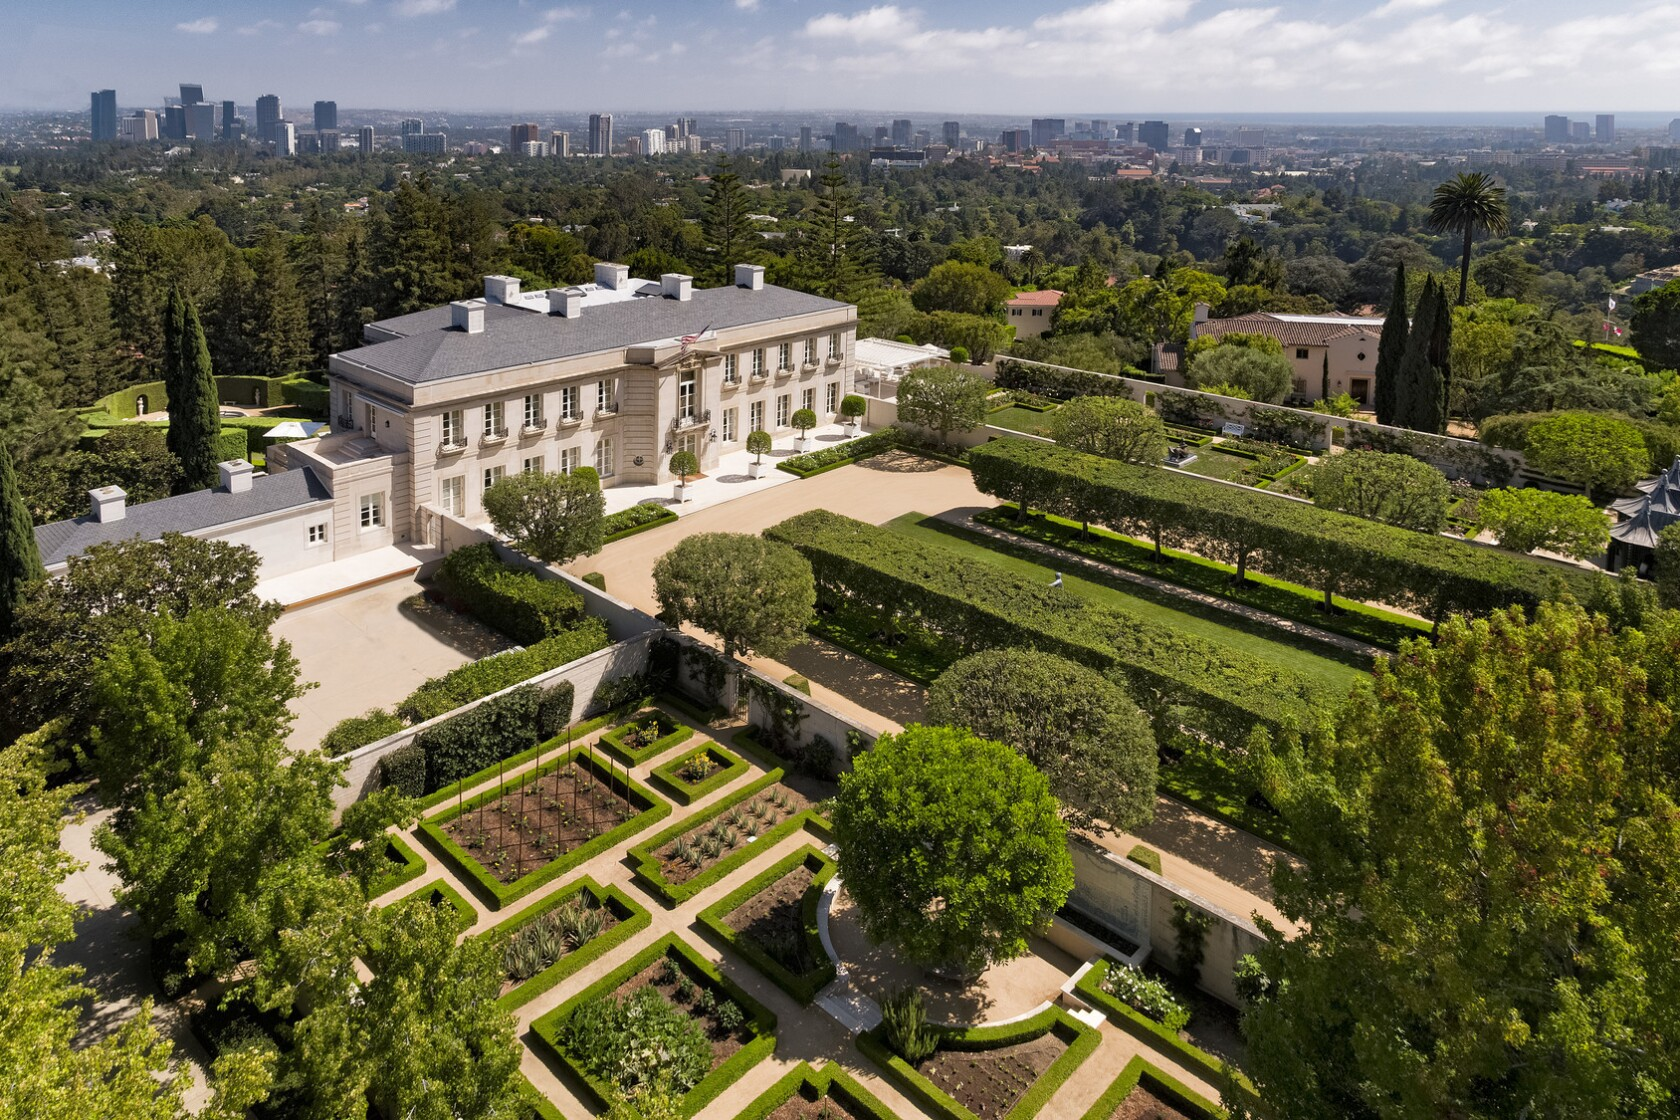 Hot Property: Chartwell sets California's new price record at about $150 million